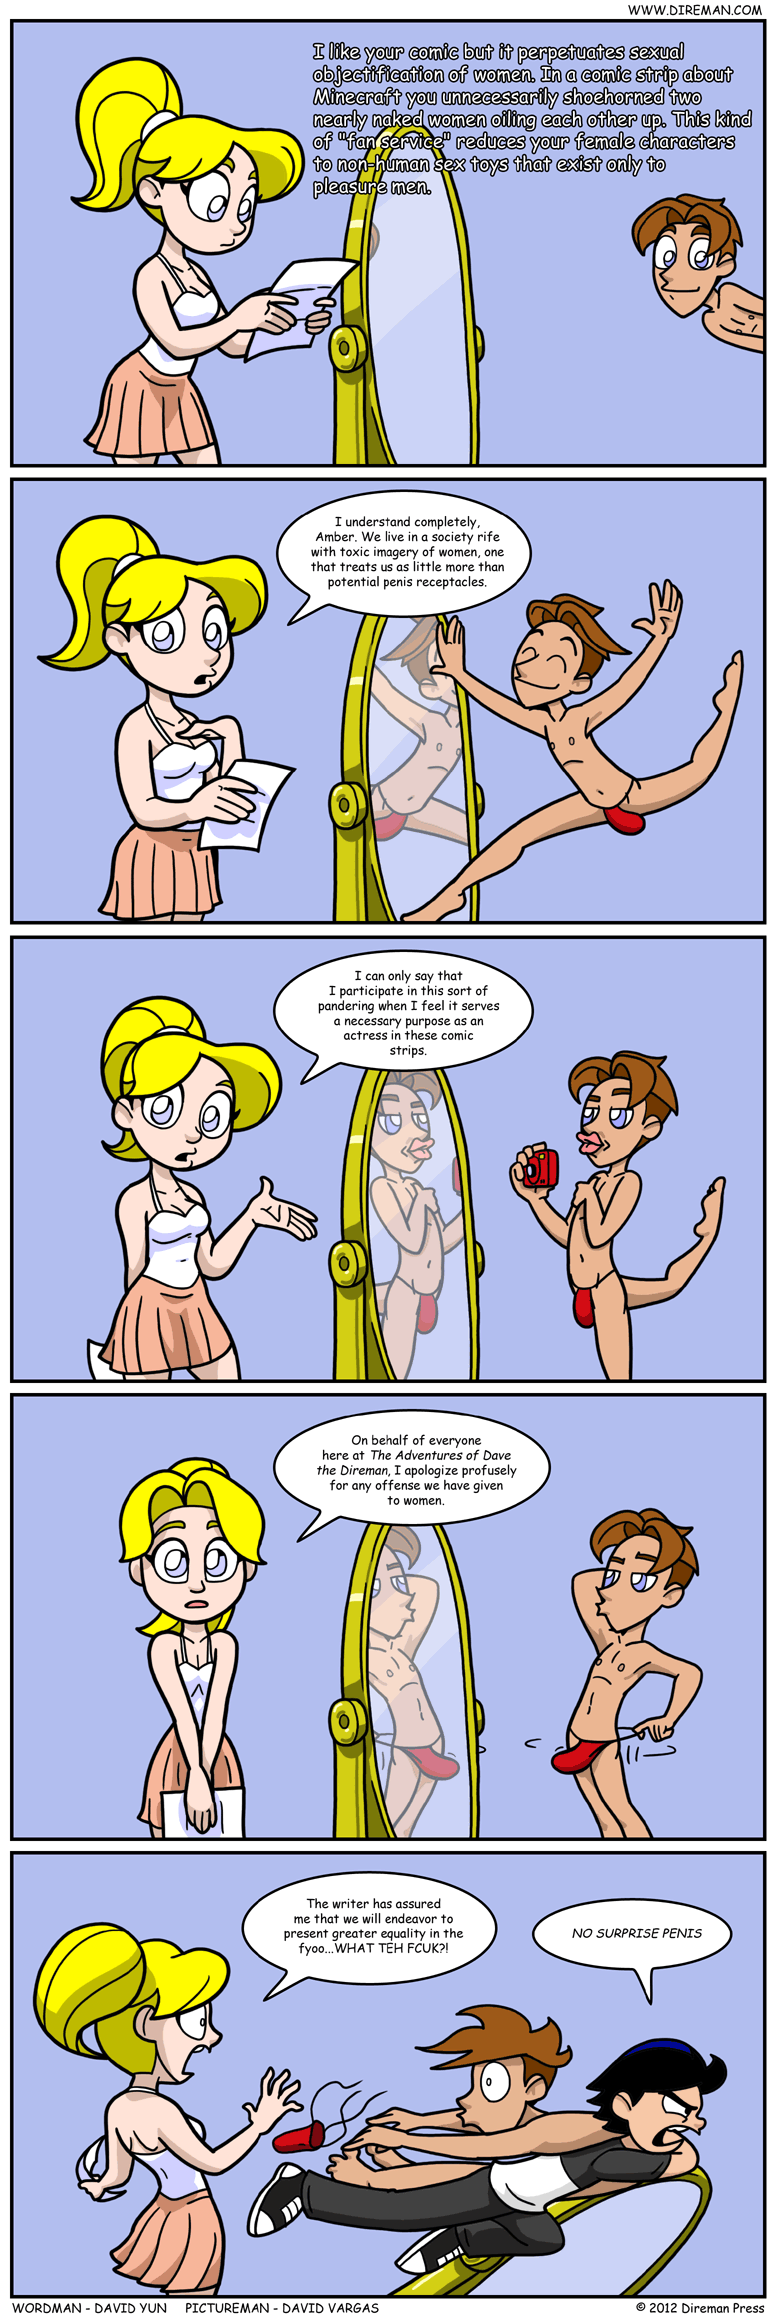 Sexual Objectification